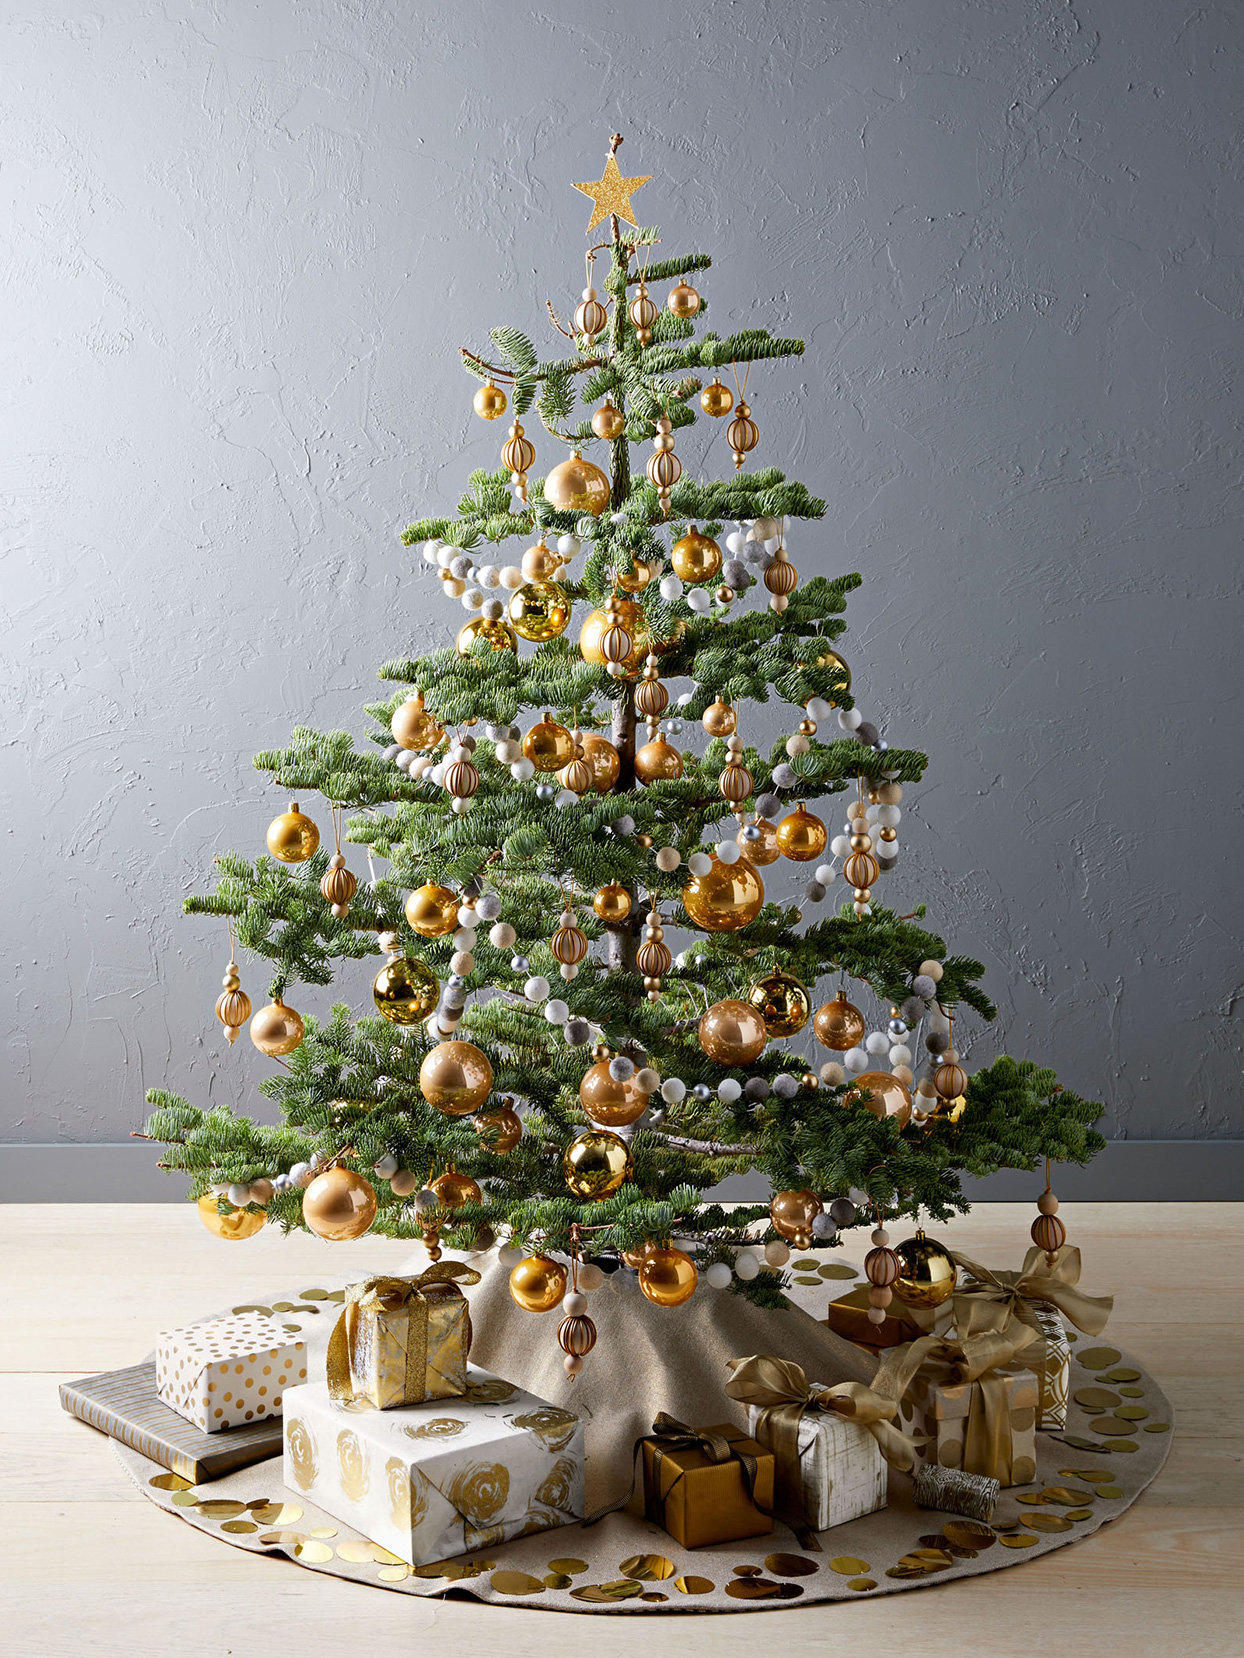 25 of Our Most Creative Christmas Tree Decorating Ideas   Martha Stewart